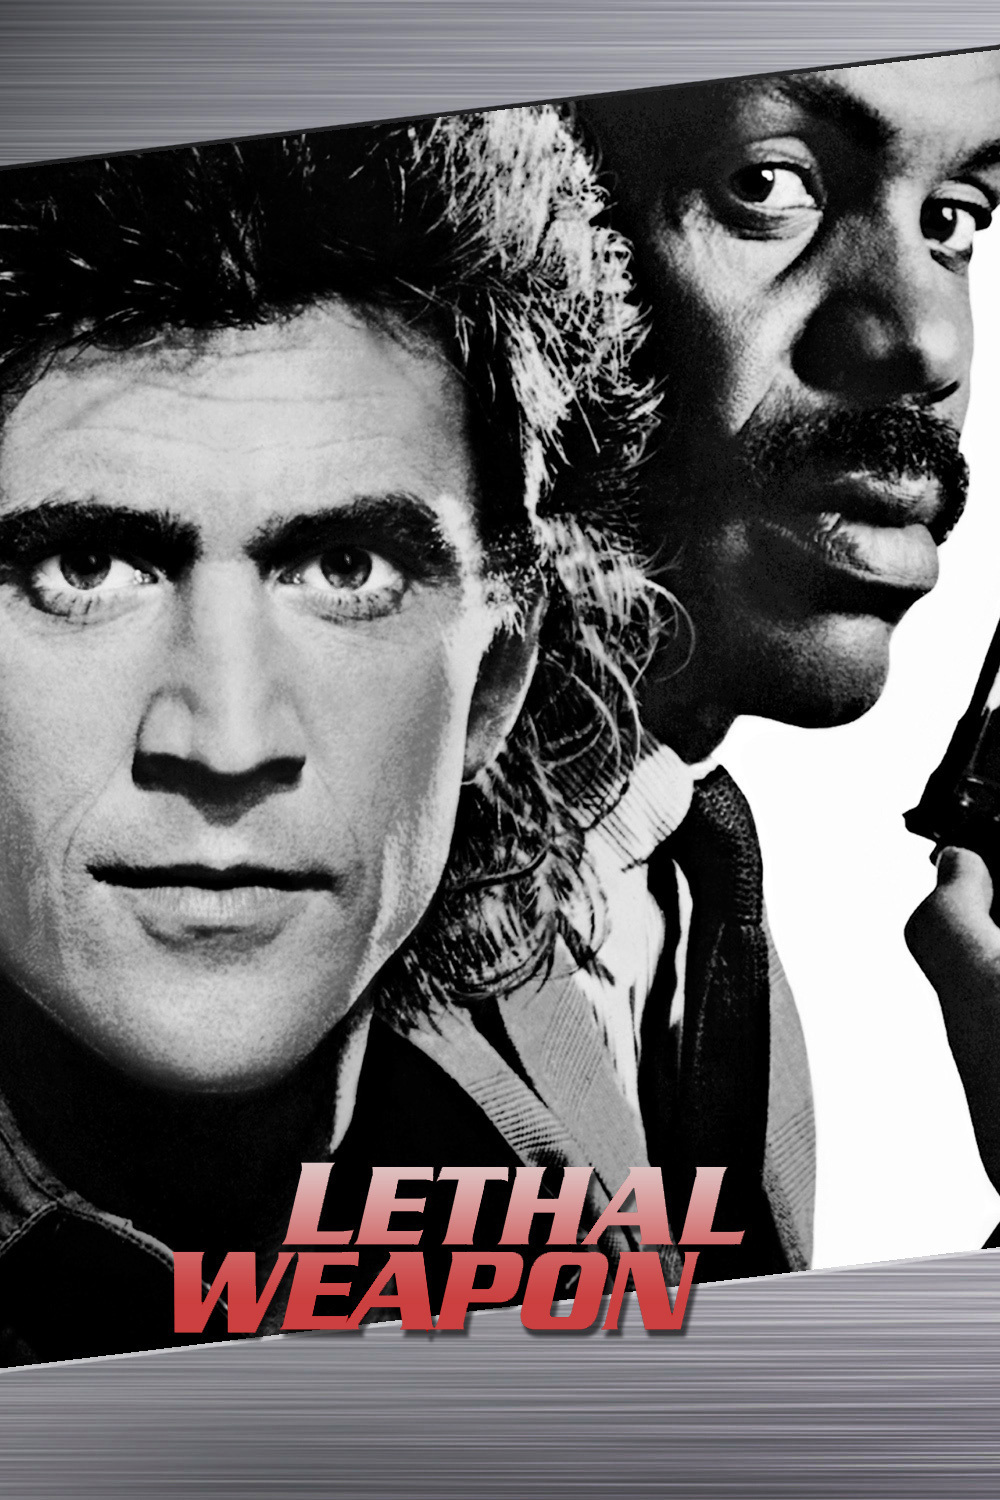 lethal weapon - photo #1